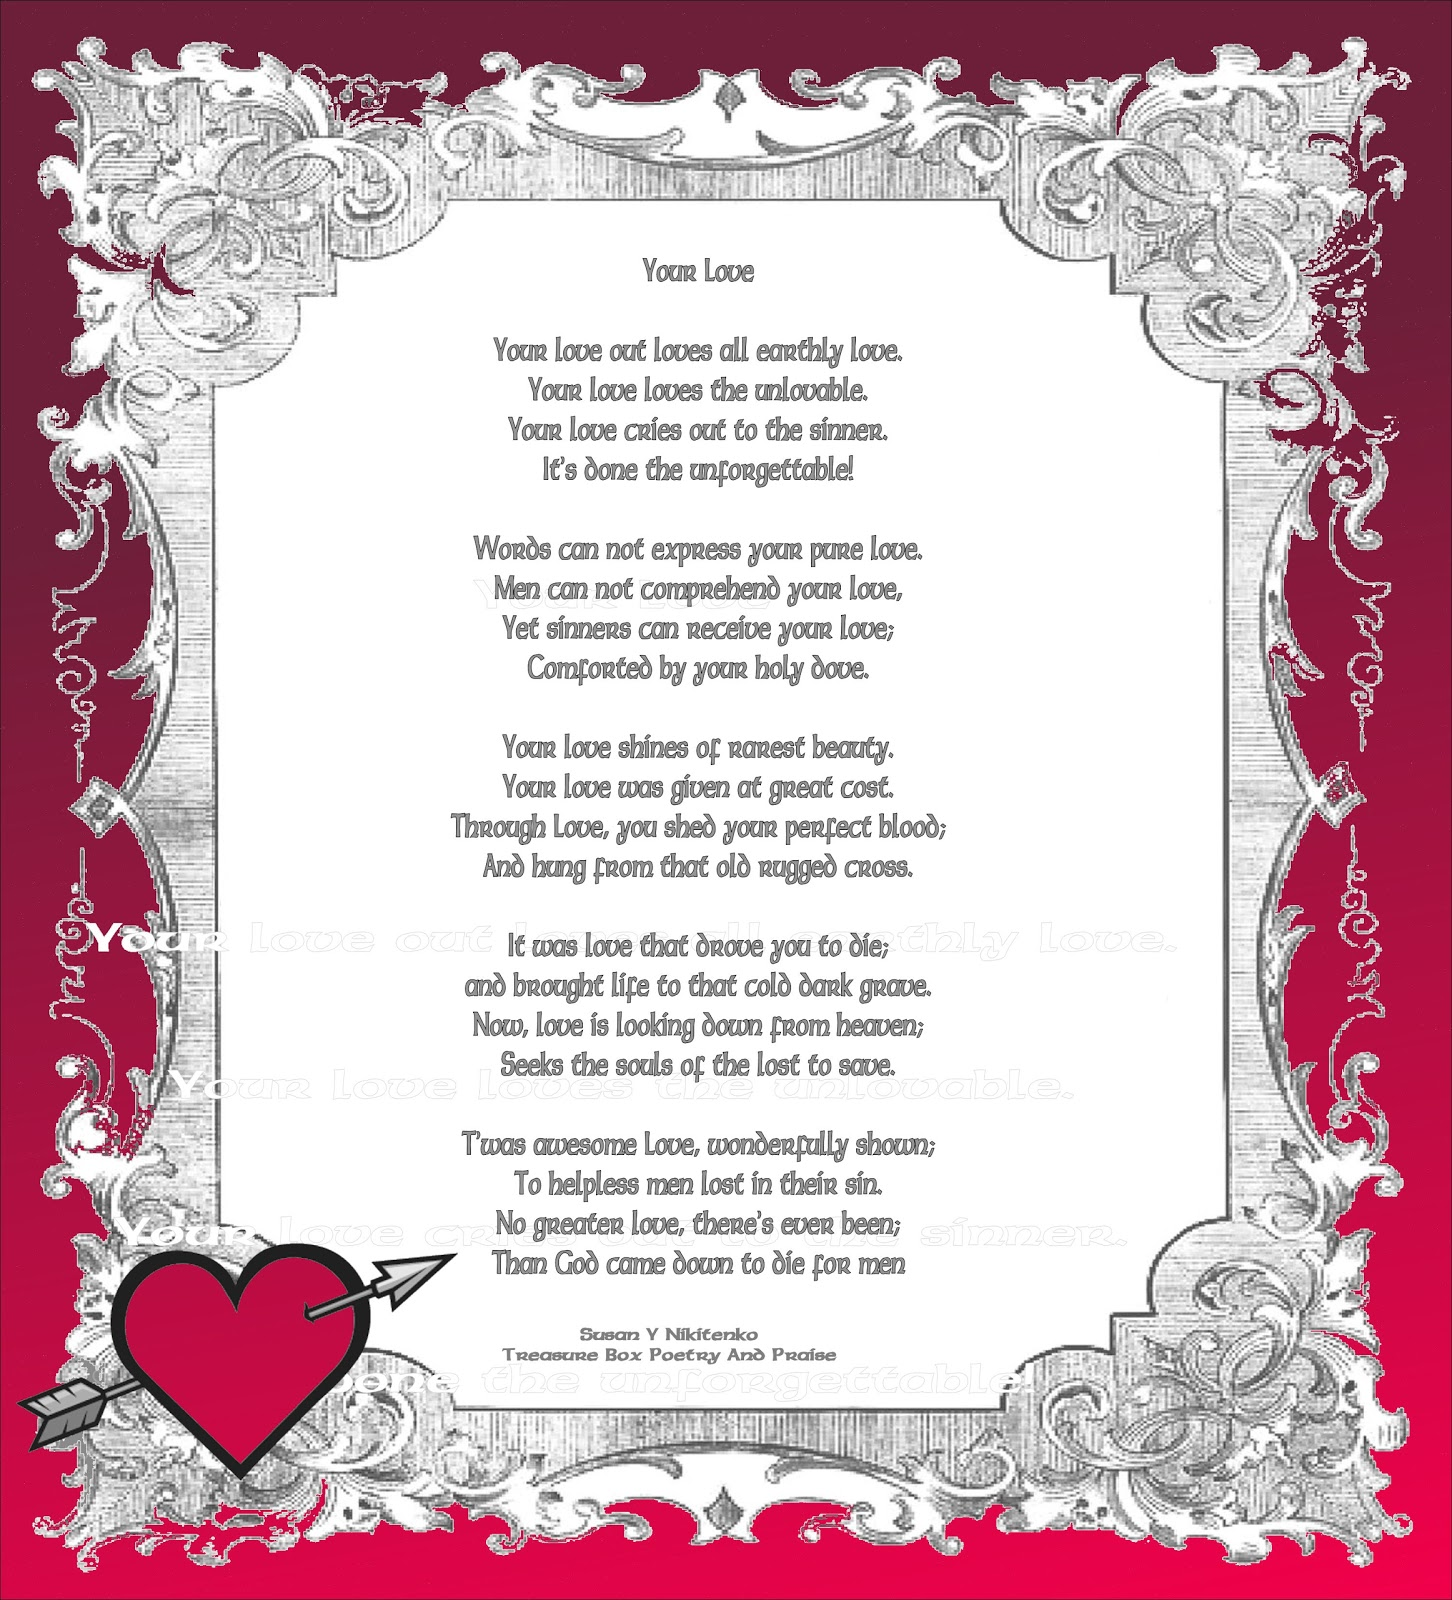 Treasure Box Poetry And Praise. 1452 x 1600.First Valentine's Day Poems